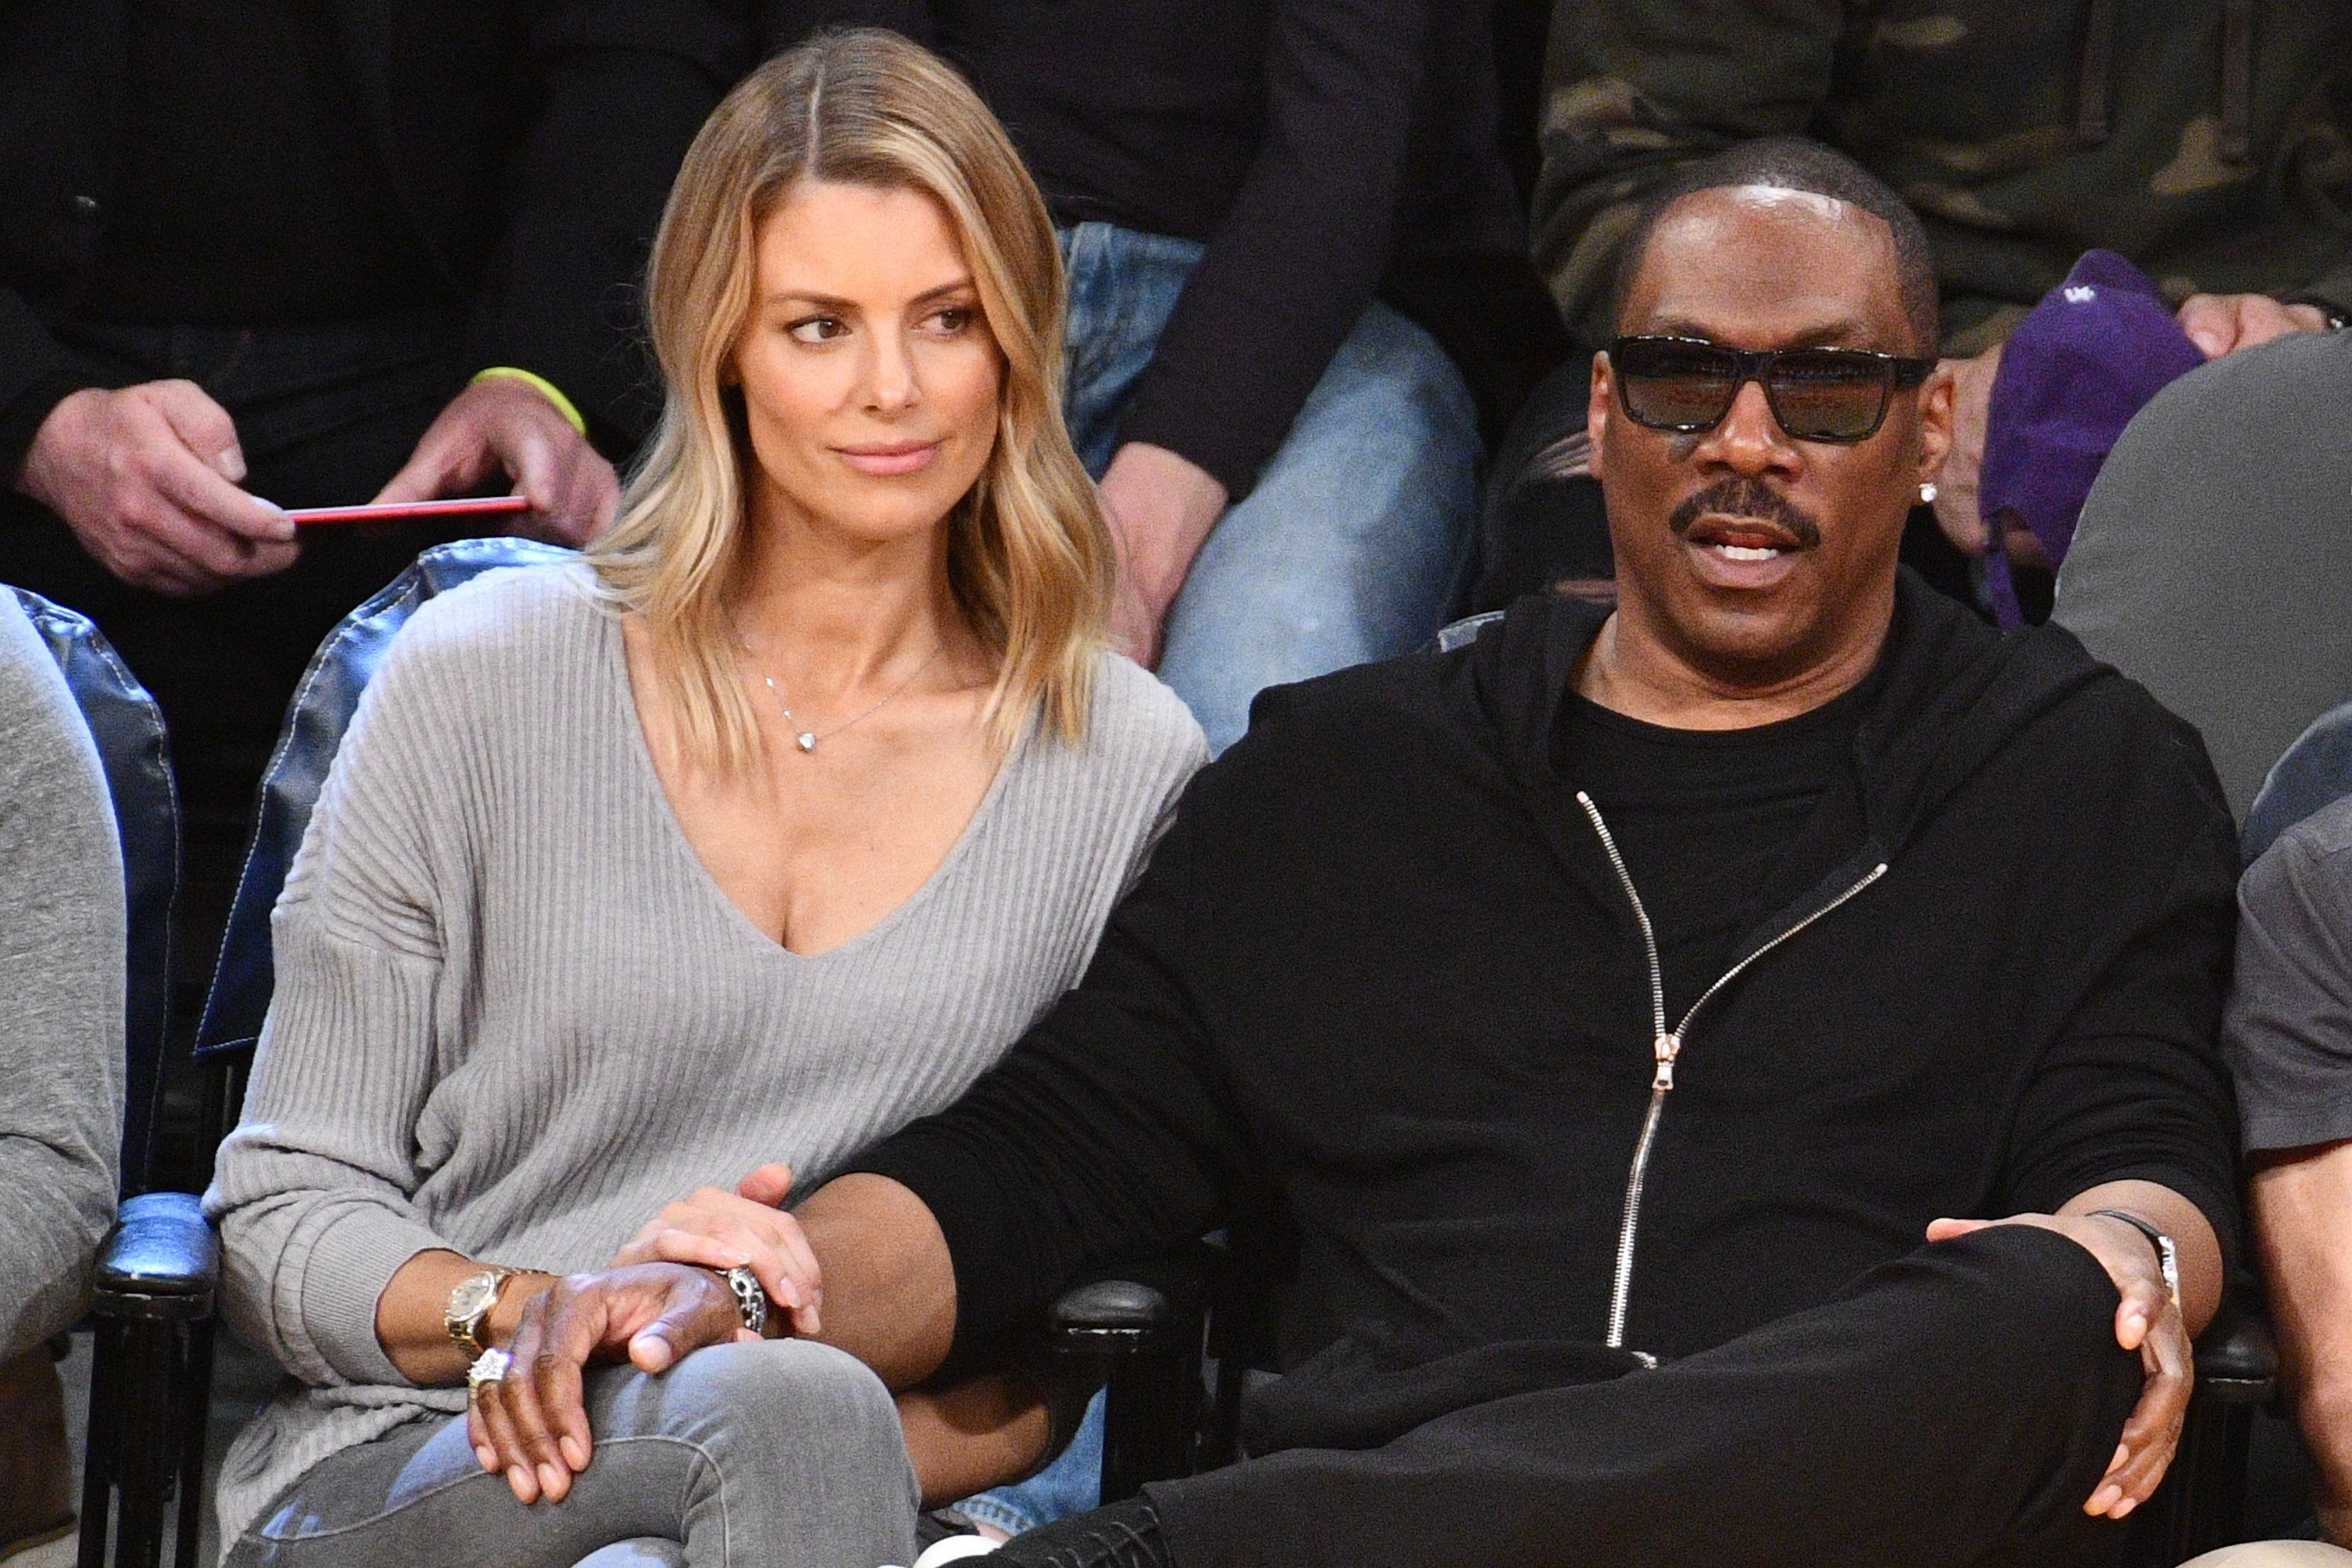 Eddie Murphy and girlfriend Paige Butcher, pictured in April, have confirmed a baby is on the way.